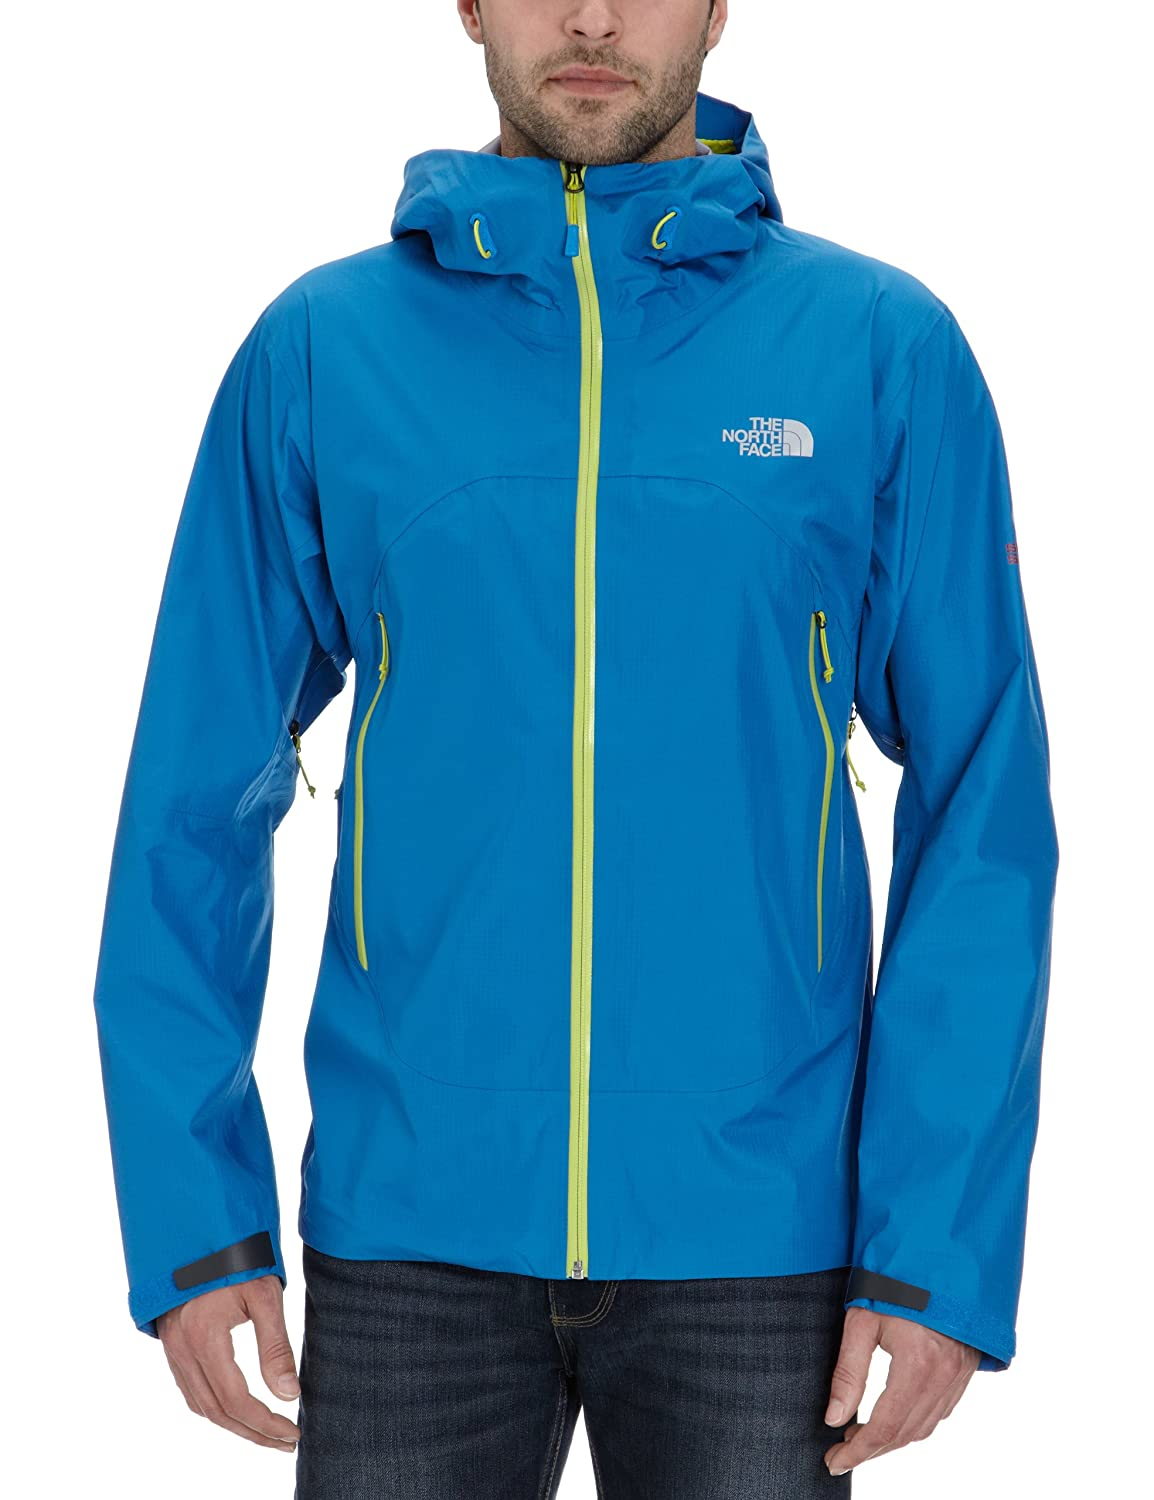 THE NORTH FACE Herren Jacke Alpine Project